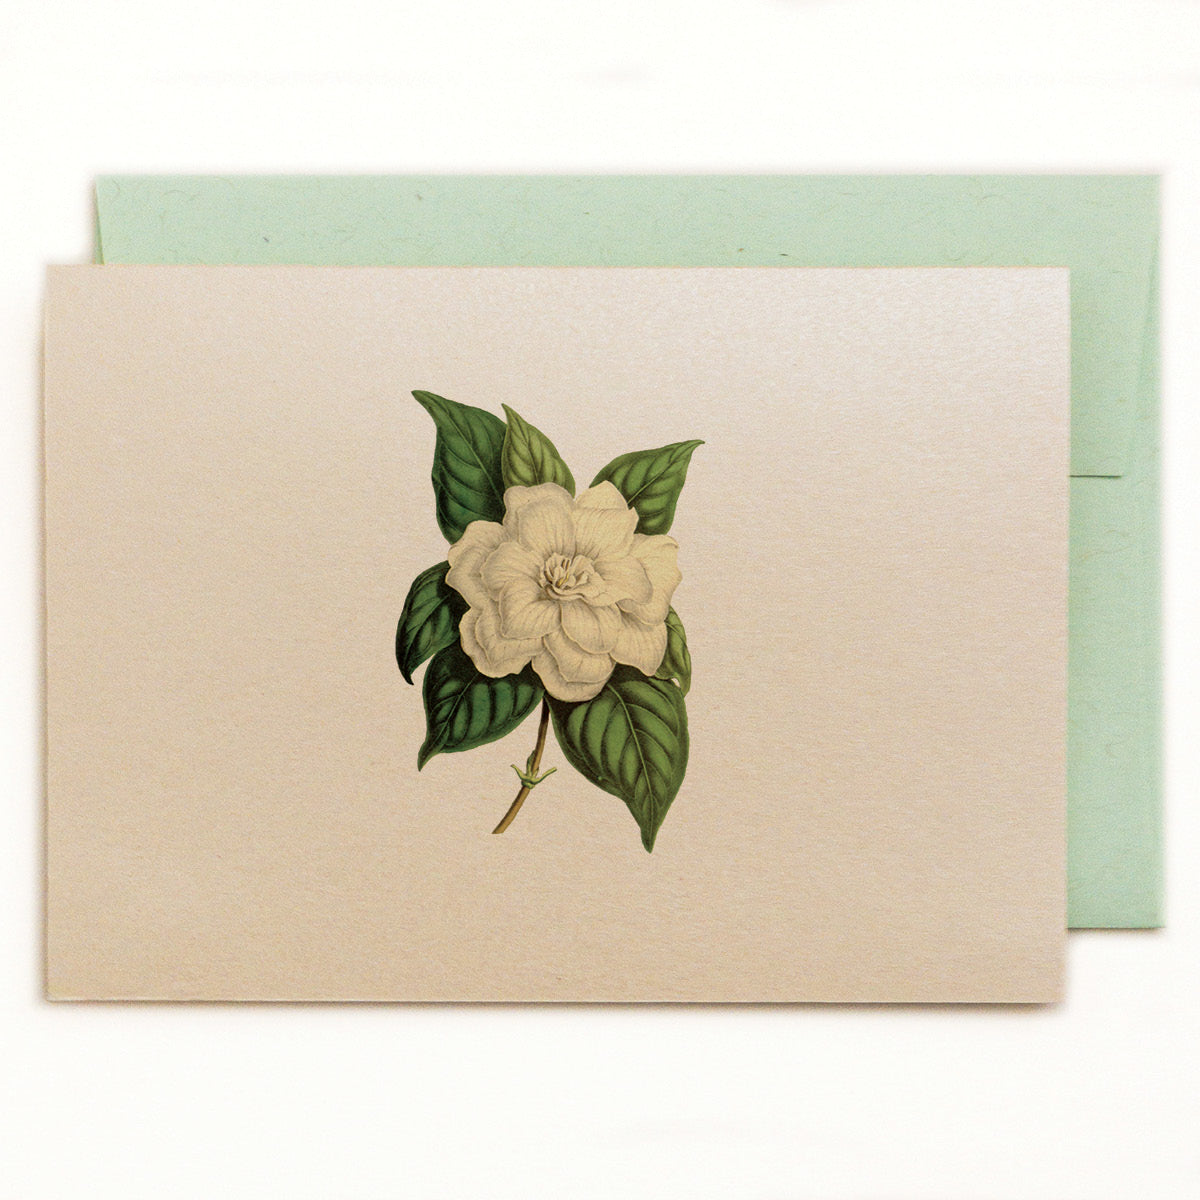 Lilybranch's Gardenia Notecard with green ledger recycled envelope